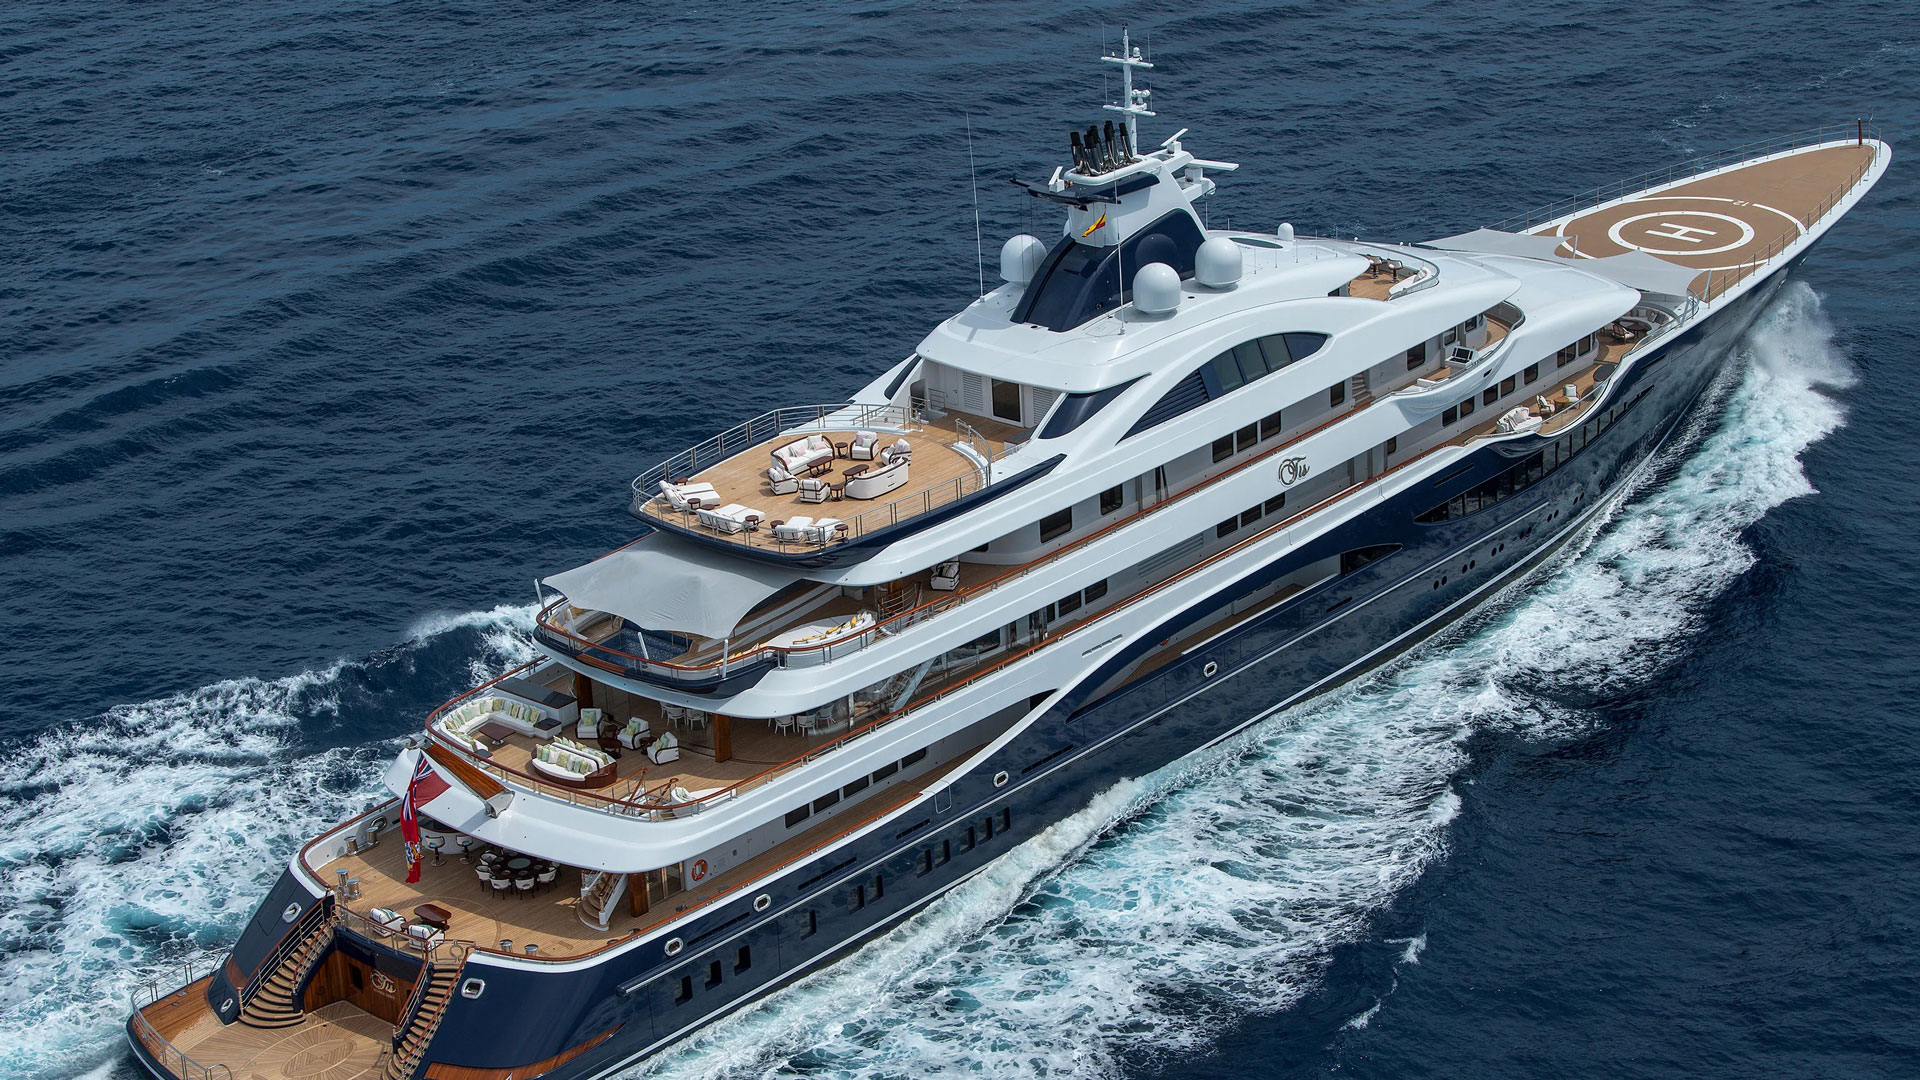 M/Y TIS, 111m Motor Yacht by LÜRSSEN, showcased at Monaco Yacht Show 2019 | FINEST LIVING | Finest Residences